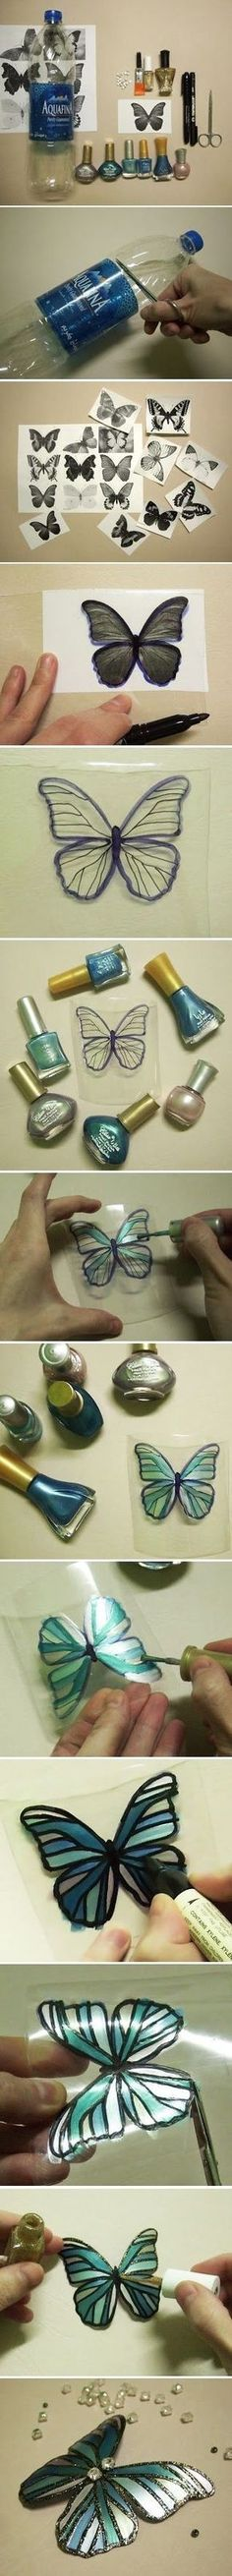 DIY Butterflies Made From Plastic craft crafts easy crafts diy crafts diy decor easy diy craft decorations home crafts teen crafts crafts for teen ids crafts